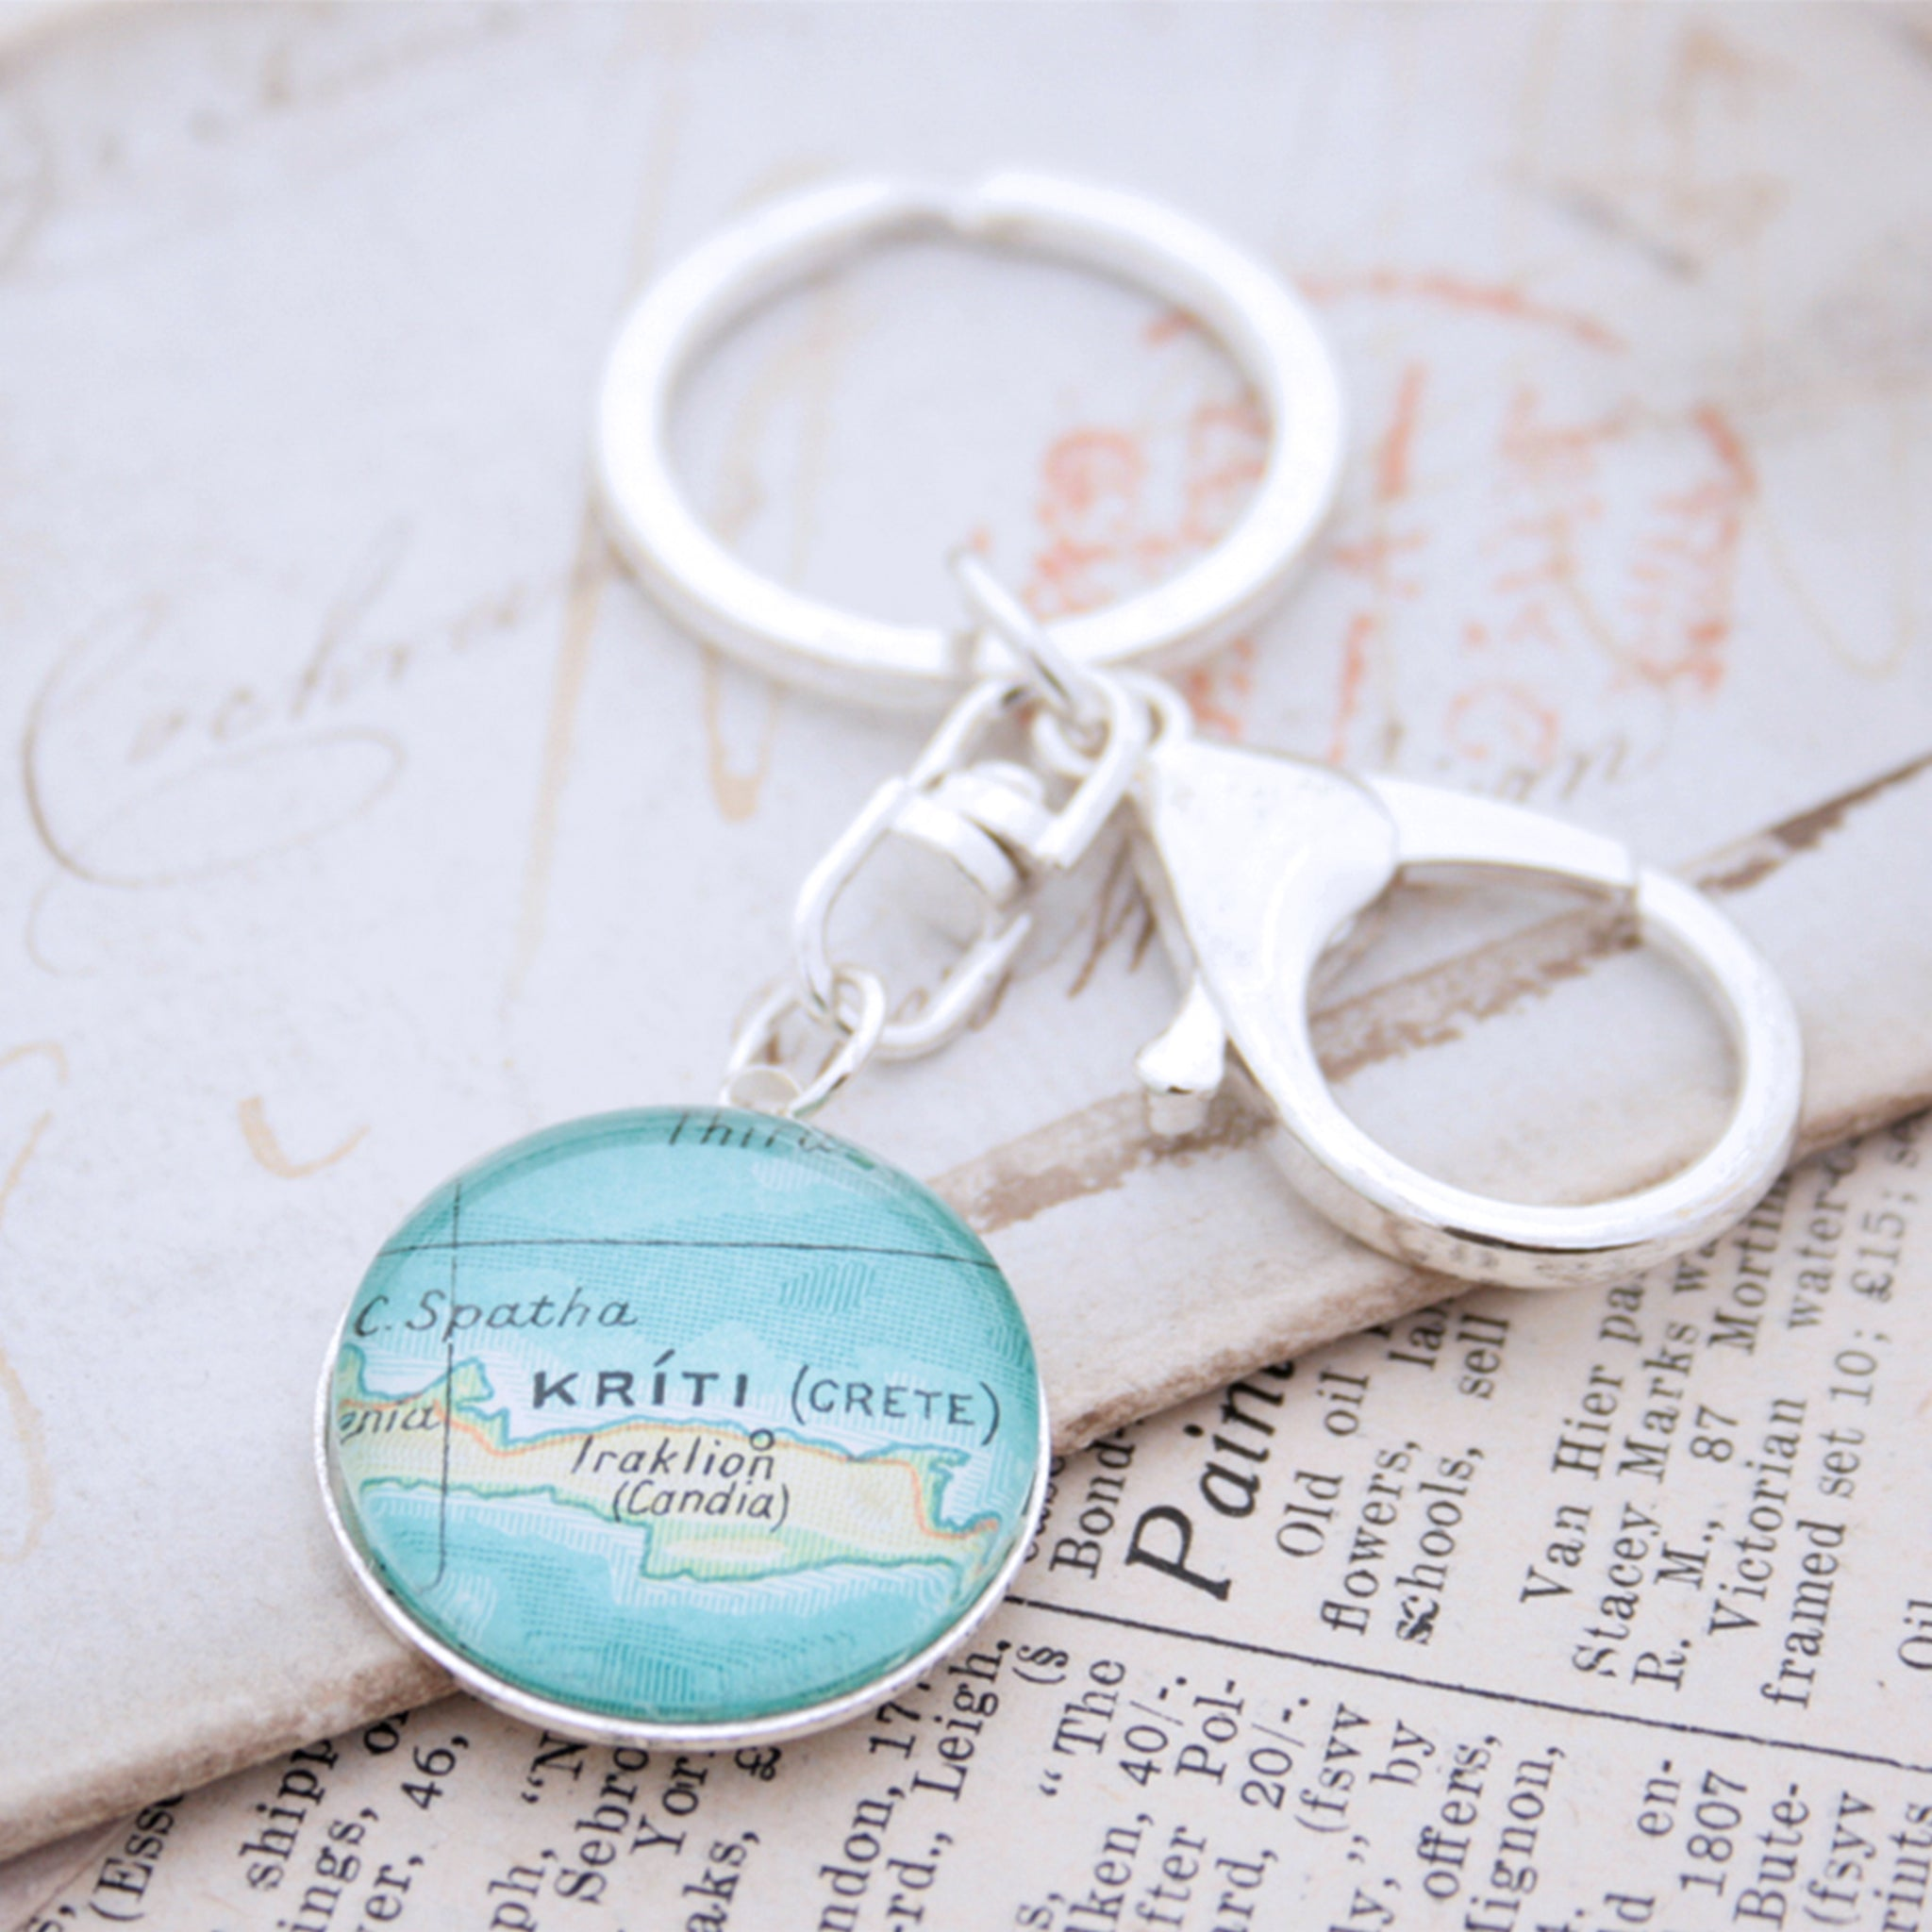 Personalised keyring in silver color featuring map of Kriti